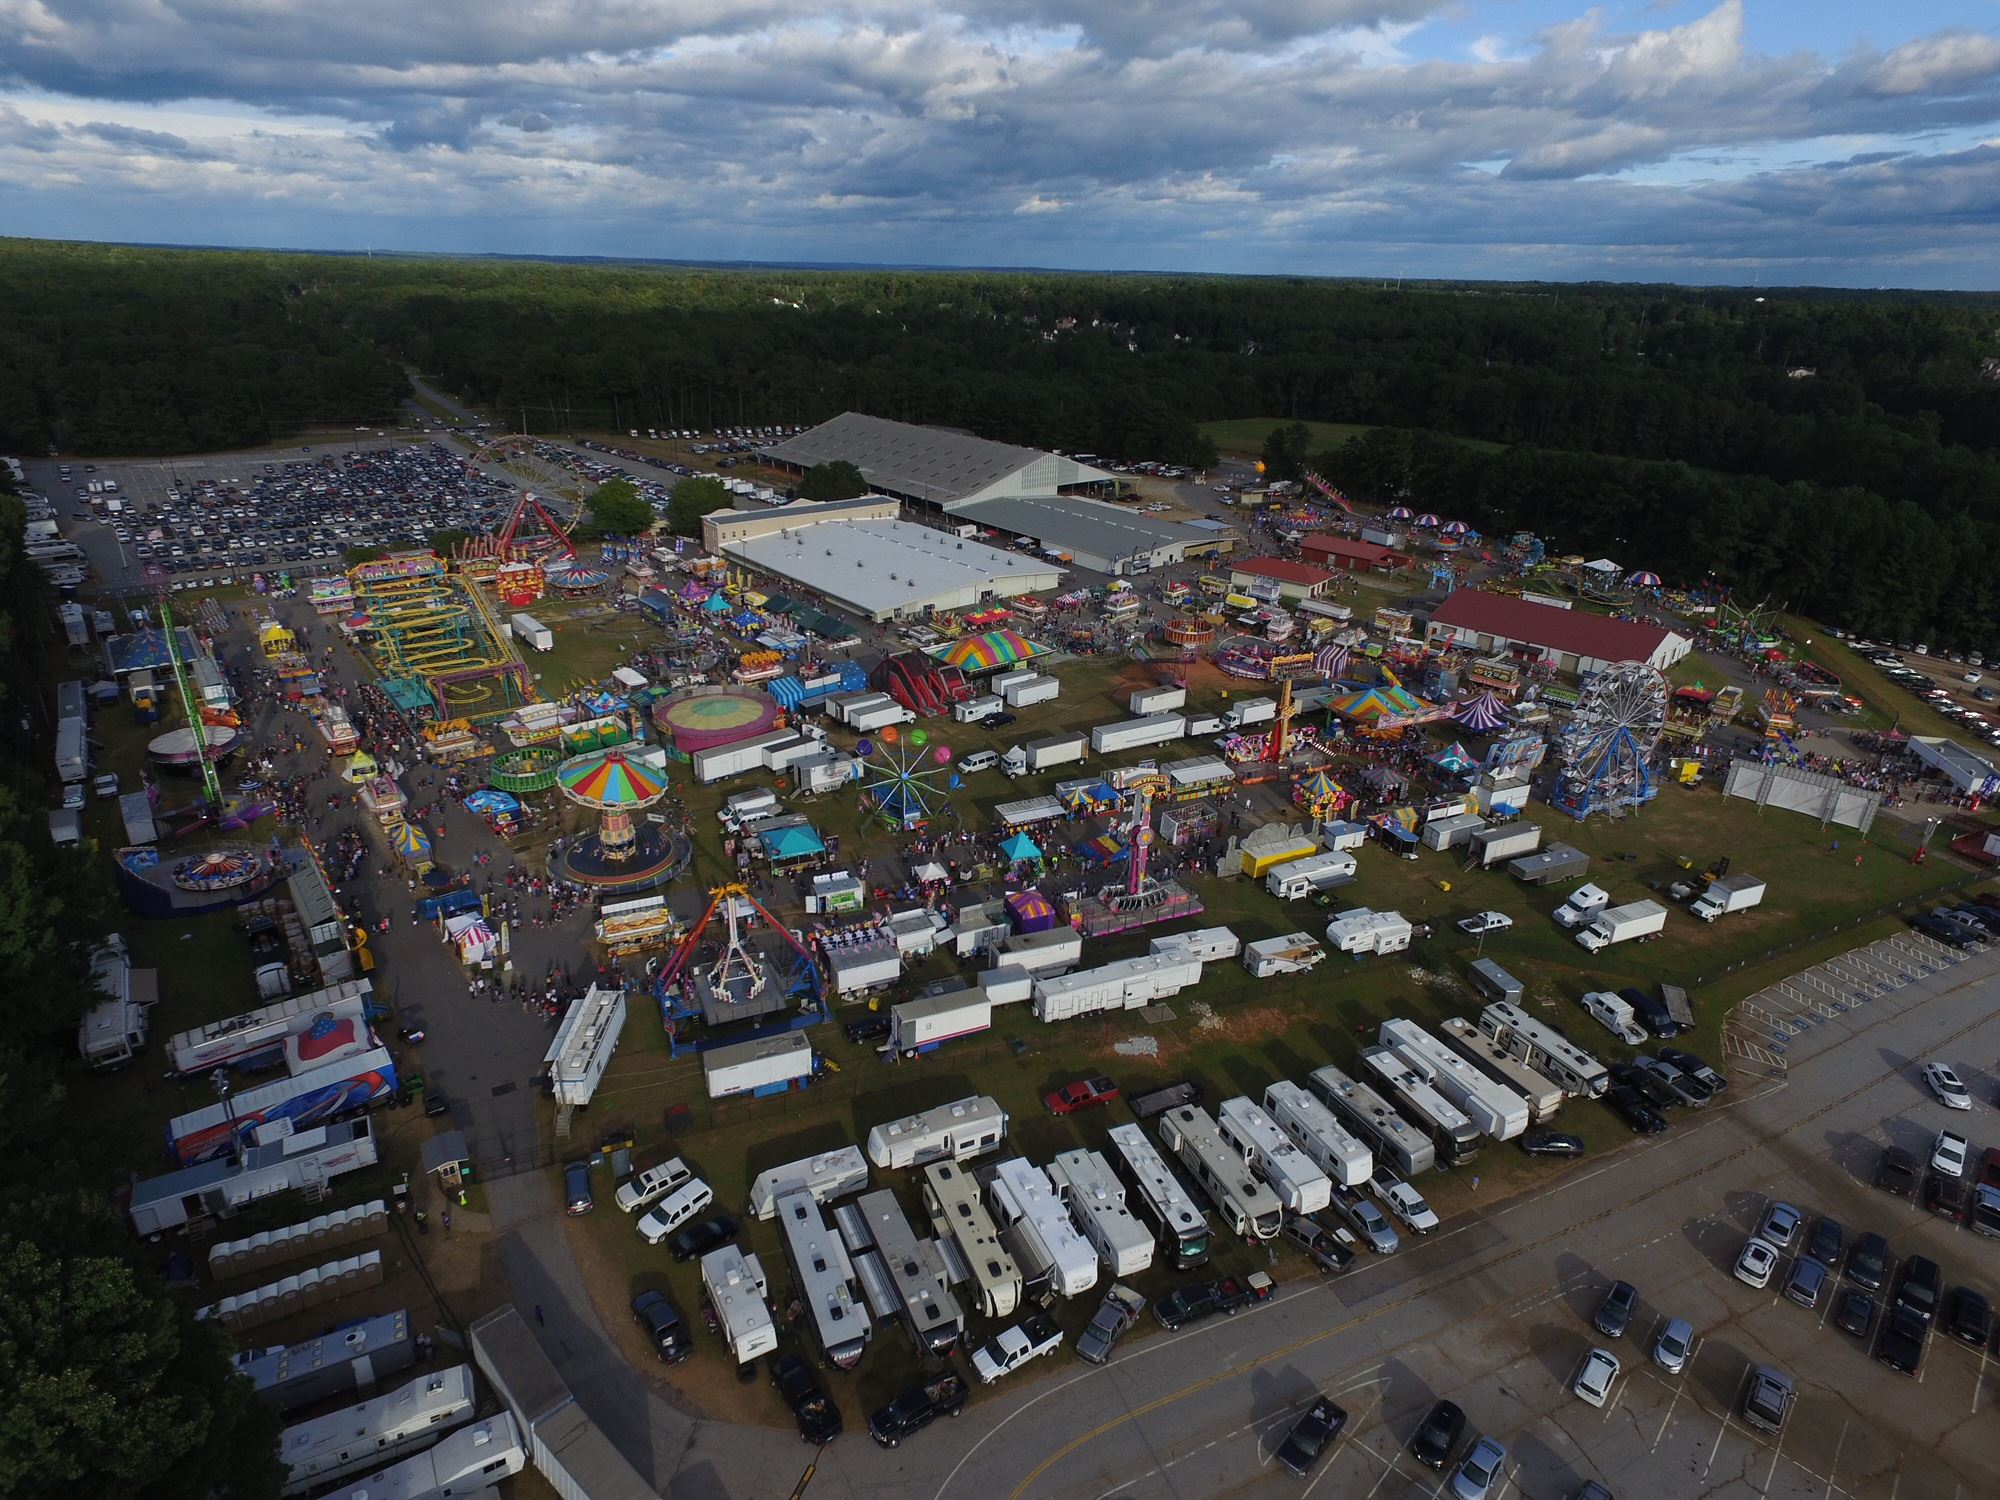 Fair from drone shot 500 feet high